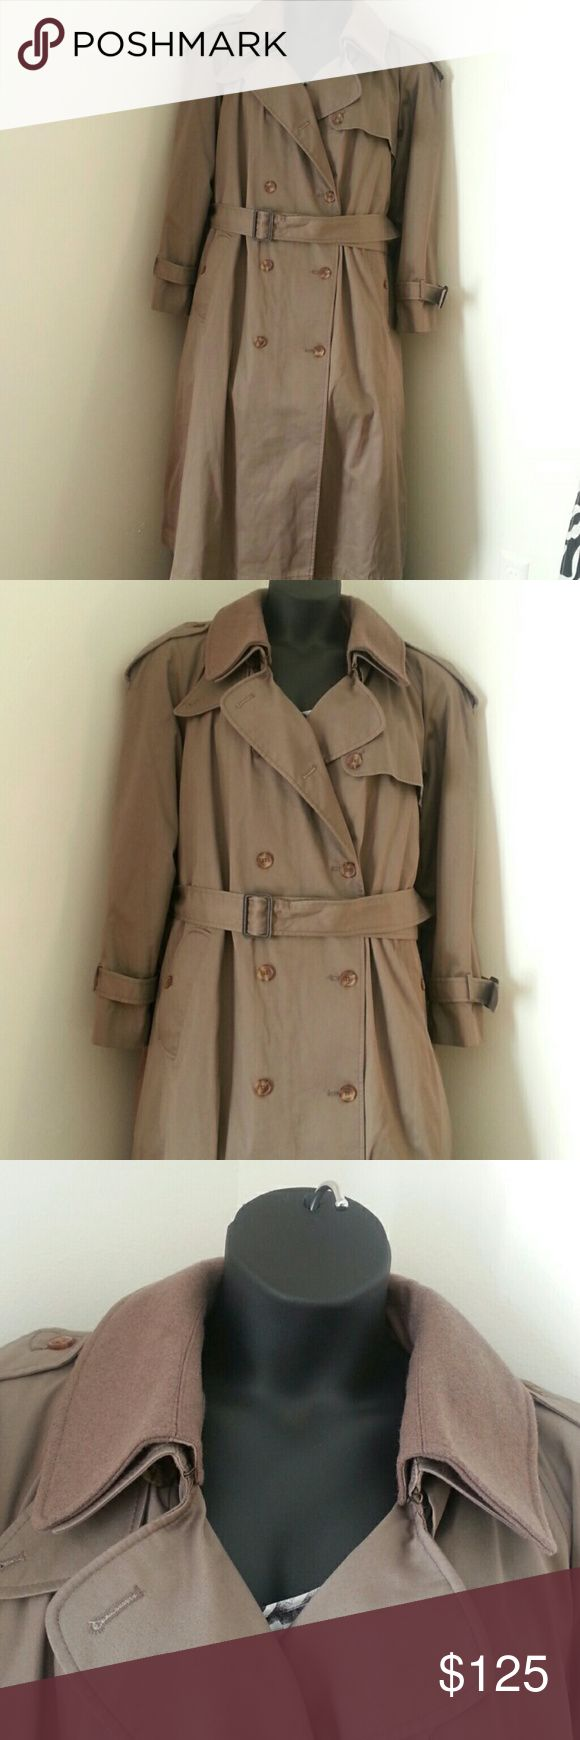 Ladies Worthington Double Breasted Trench Coat Ladie Worthington Double Breasted Trench Coat- Beige khaki color, Full length, Size 22W,Belt, Removable lining and collar, Left side pocket loop ripped off and small rip in area where loop goes. Loop is attached to belt and coat w/safety pin to prevent loss. The right side belt loop is properly intact...(See pics) Clasp near collar is loose (see pic) Extra button not attached but placed inside pocket to prevent loss.(see pic) GREAT CONDITION…